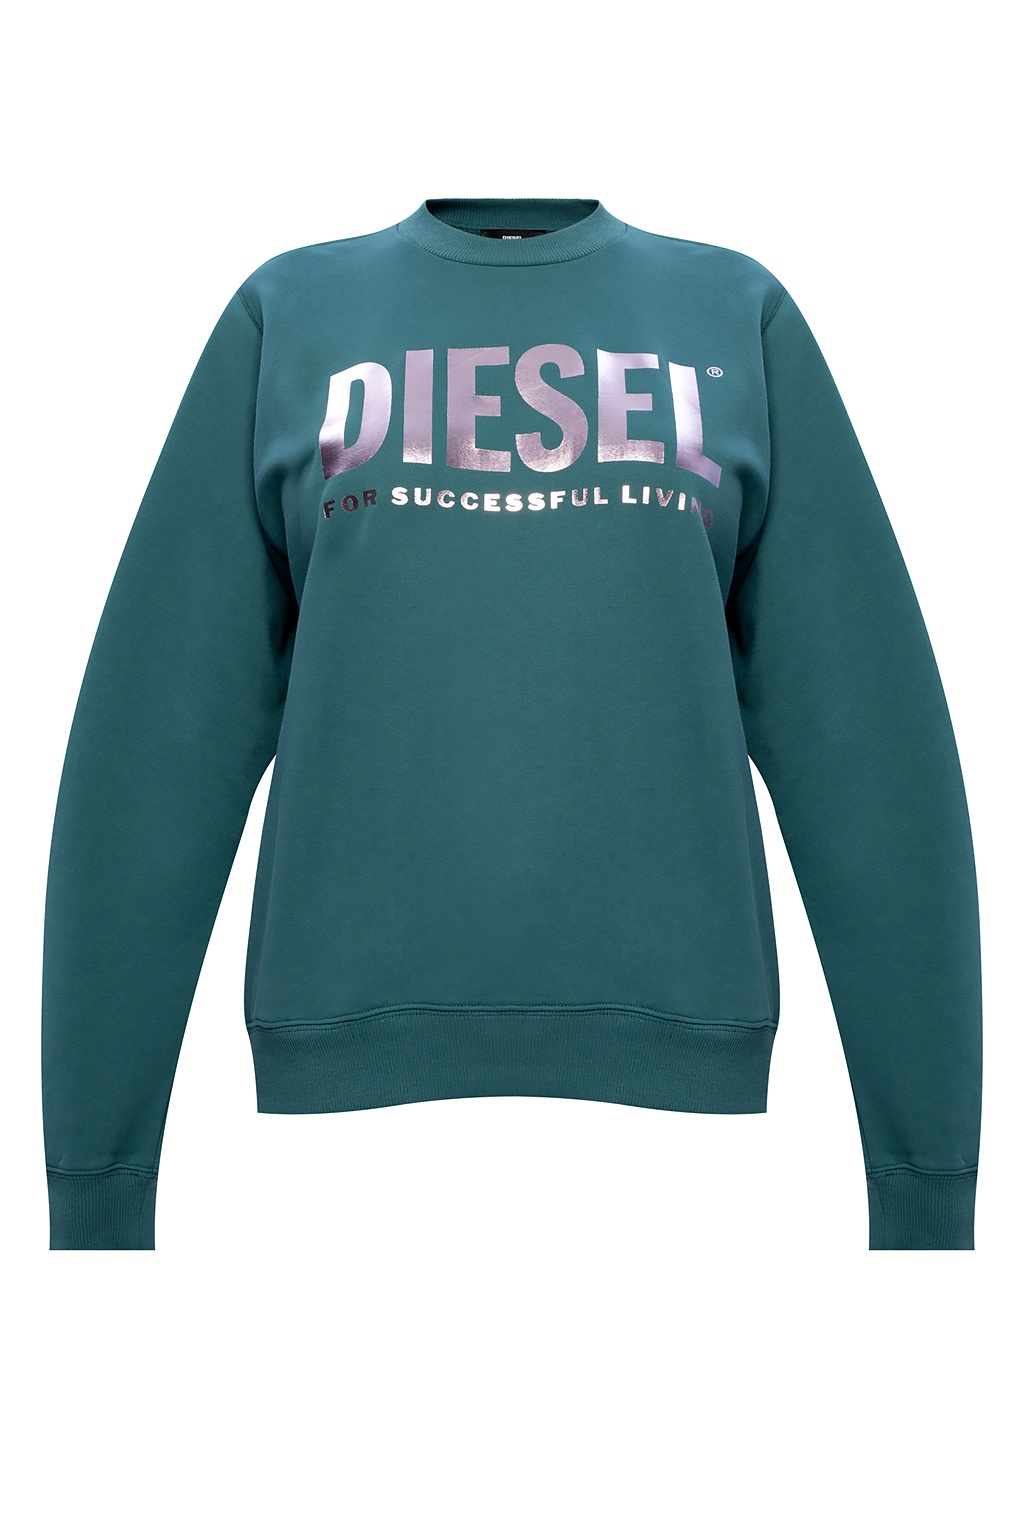 Diesel Sweatshirt with logo